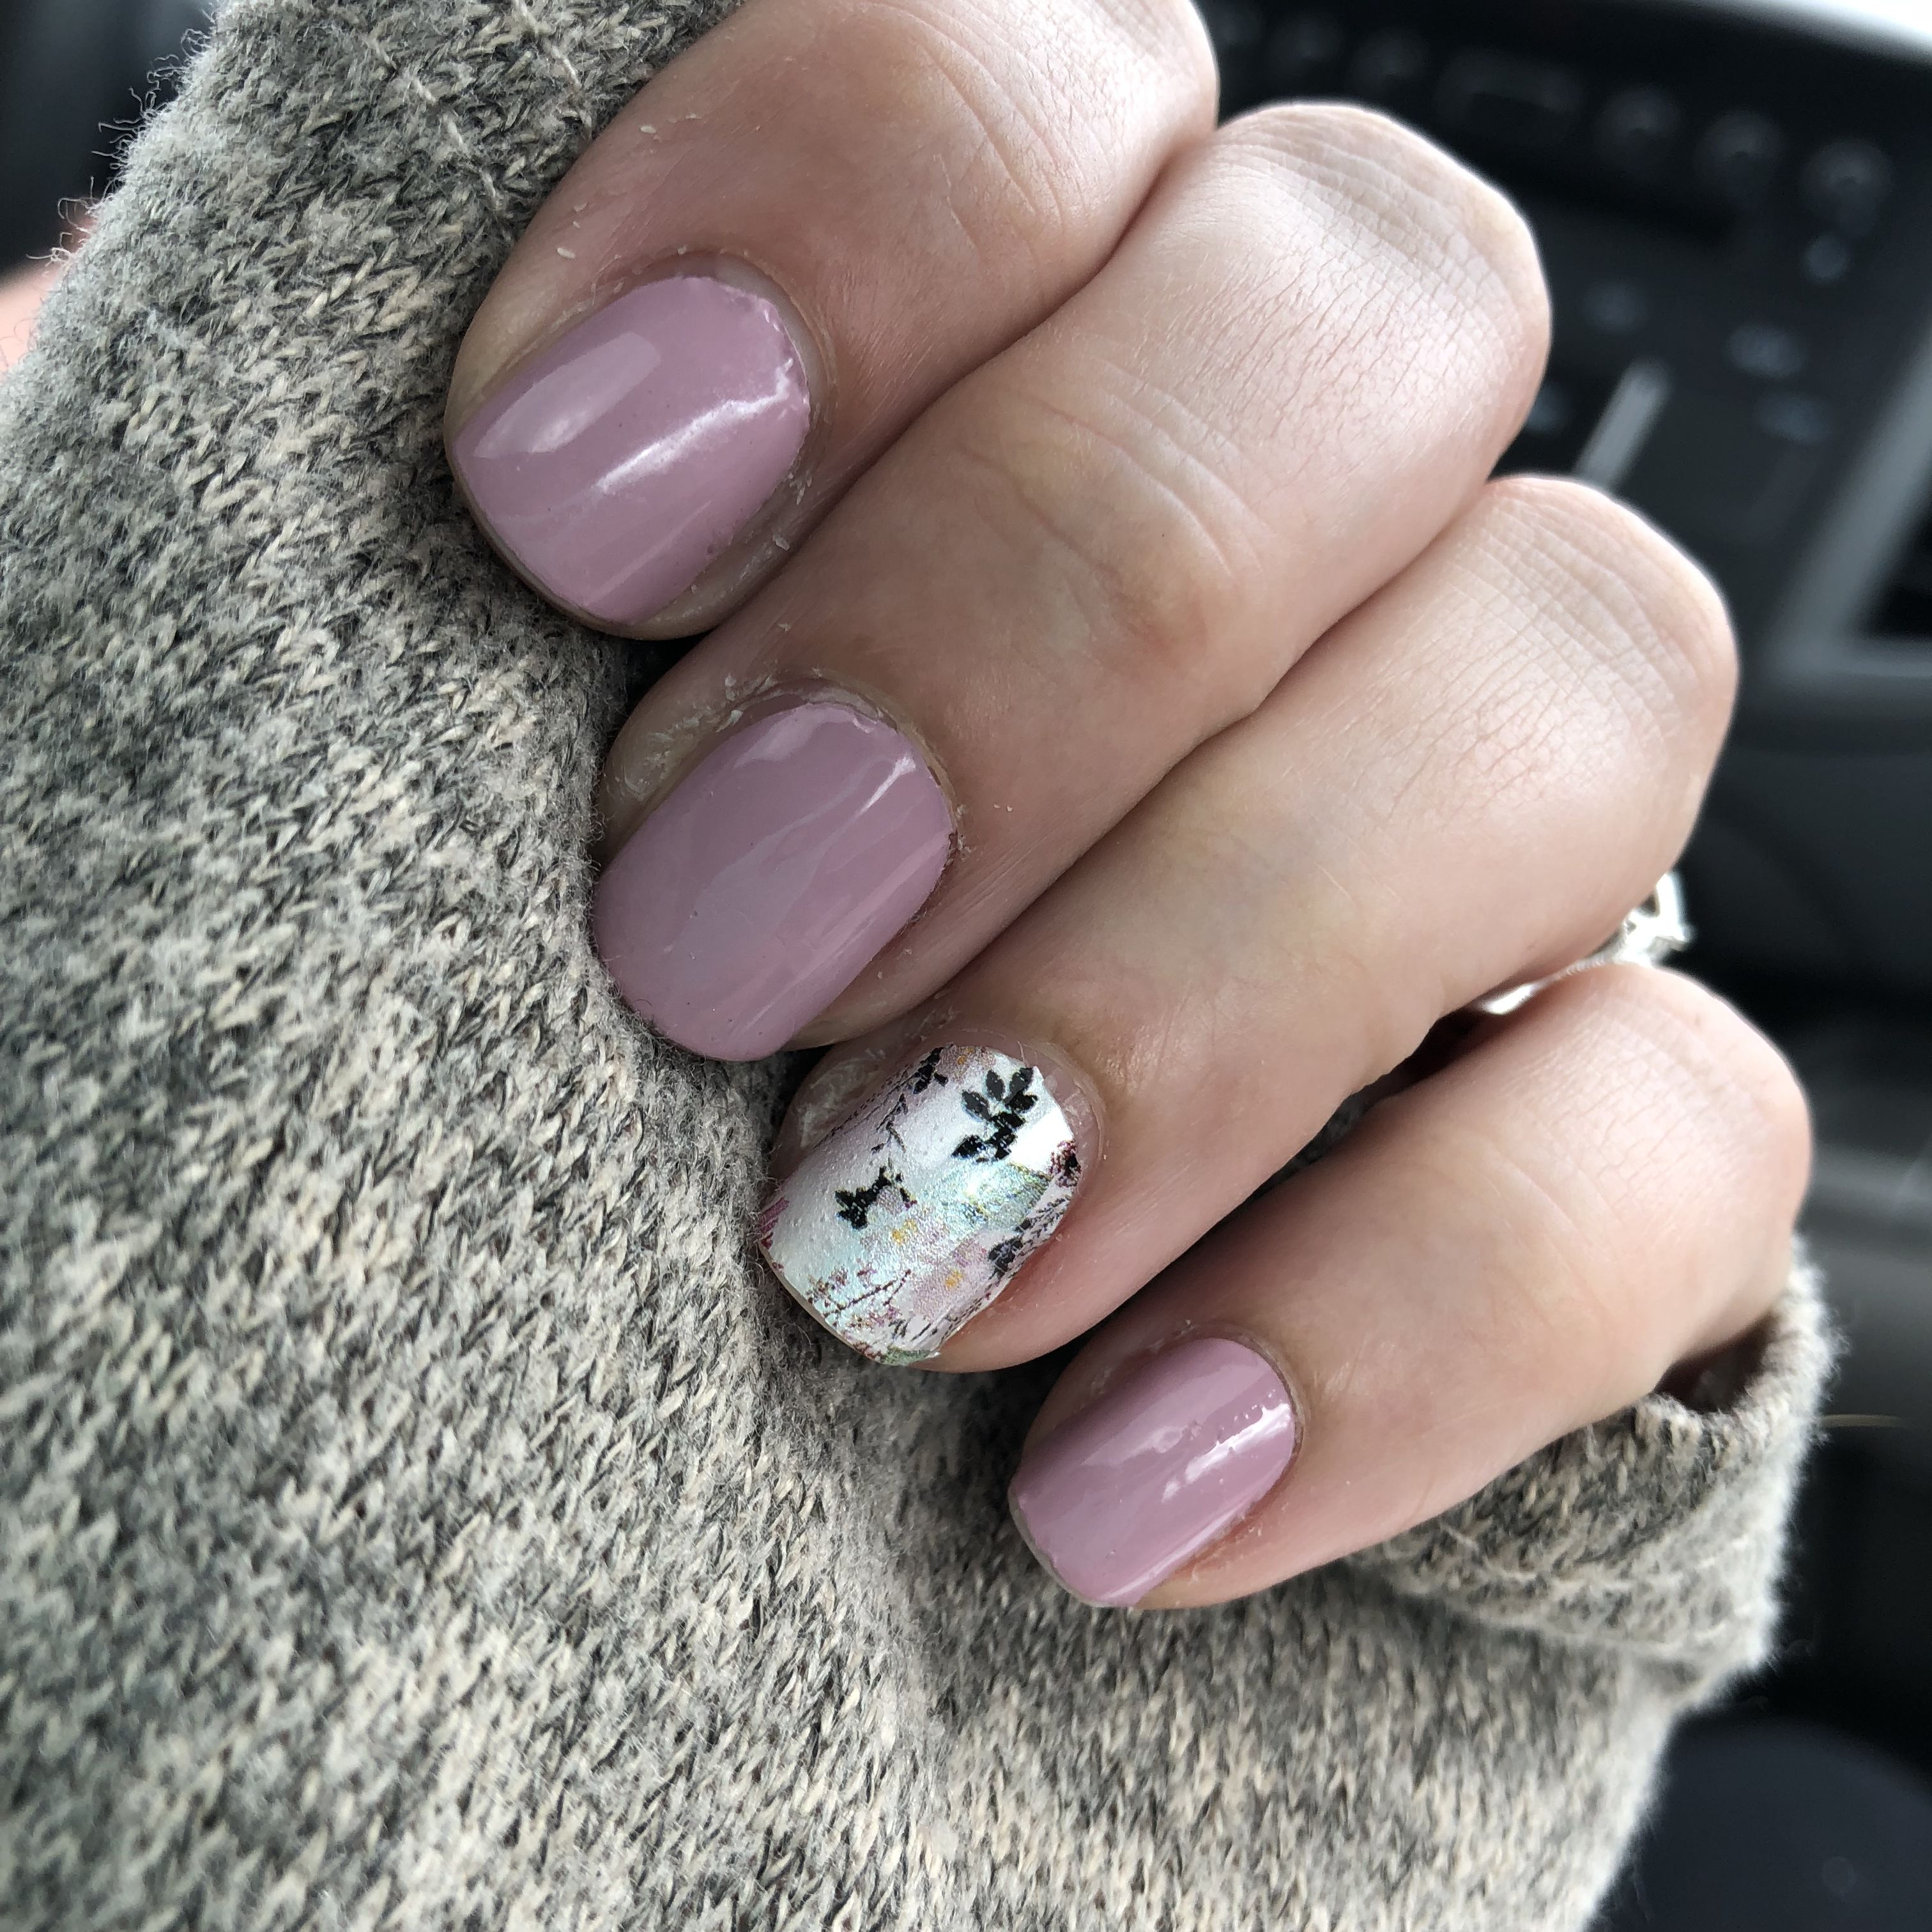 Manchester Mauve With Flora Good Time Accent Nail Colorstreetnails Mandasmanis Color Street Nails Nail Color Combos Accent Nails